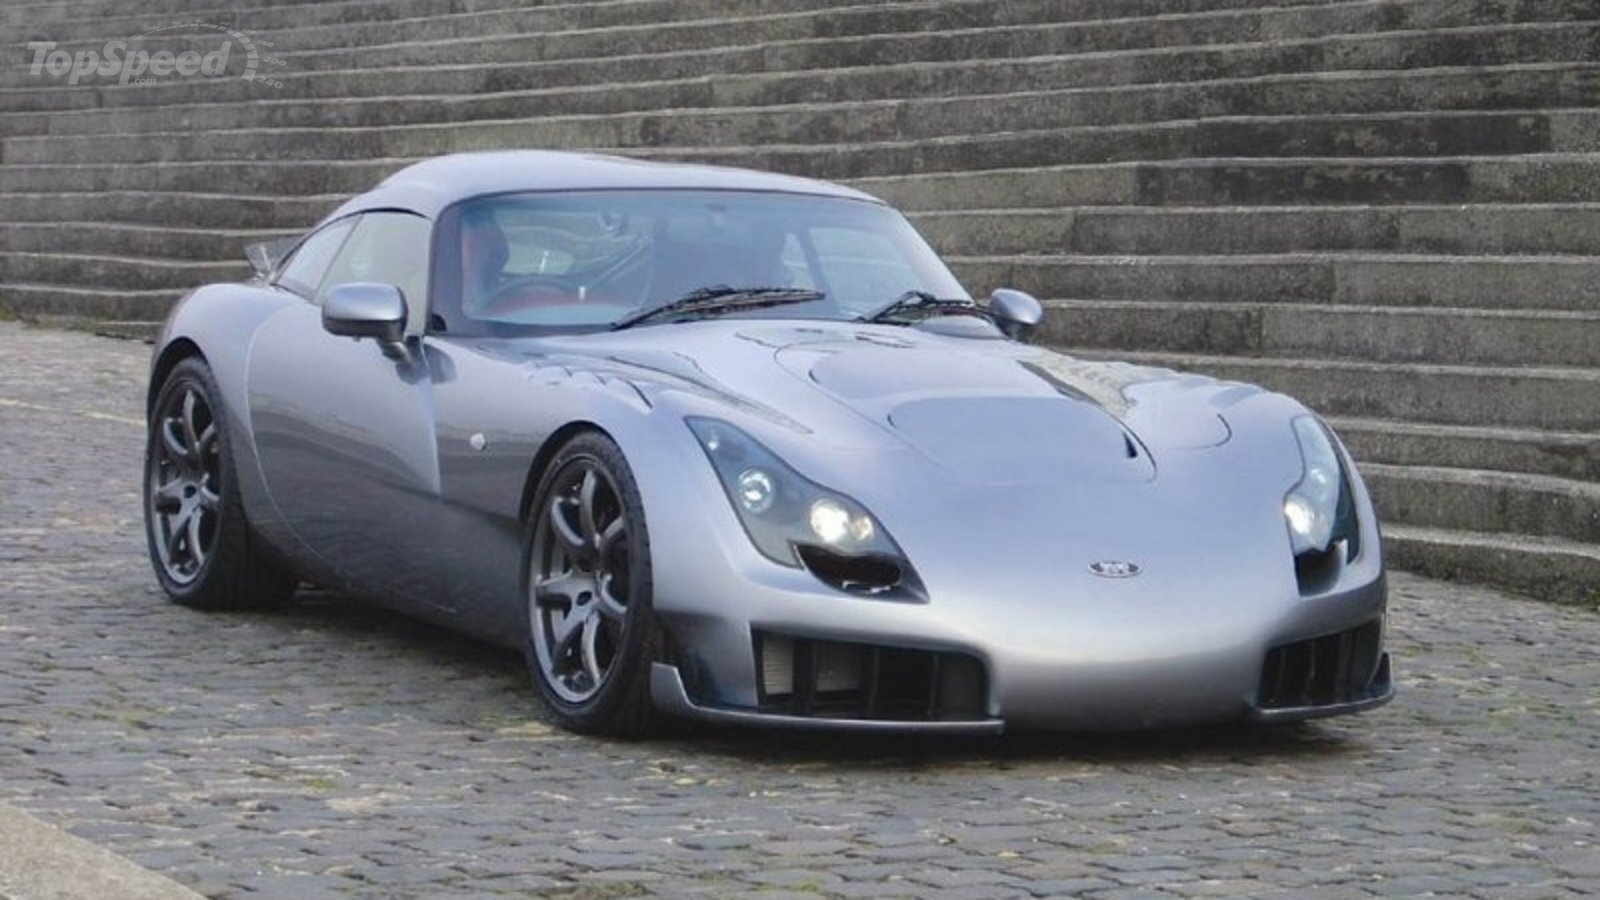 TVR's Future Sports Car Will Get Cosworth-Tuned V-8 Engine